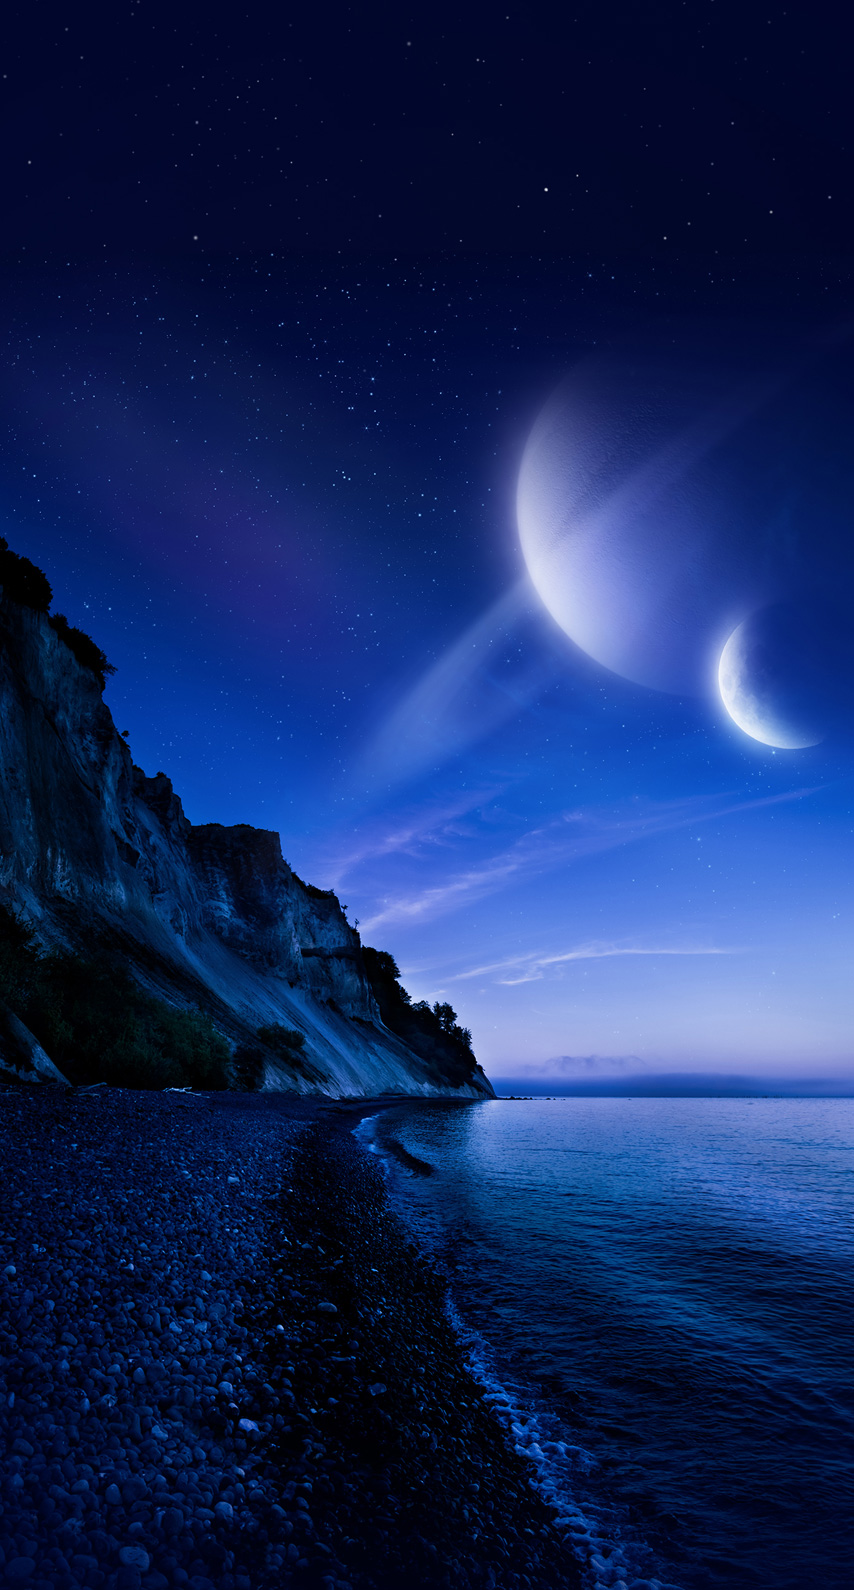 dusk, midnight, horizon, phenomenon, computer wallpaper, darkness, astronomical object, celestial event, moonlight, outer space, atmosphere of earth, calm